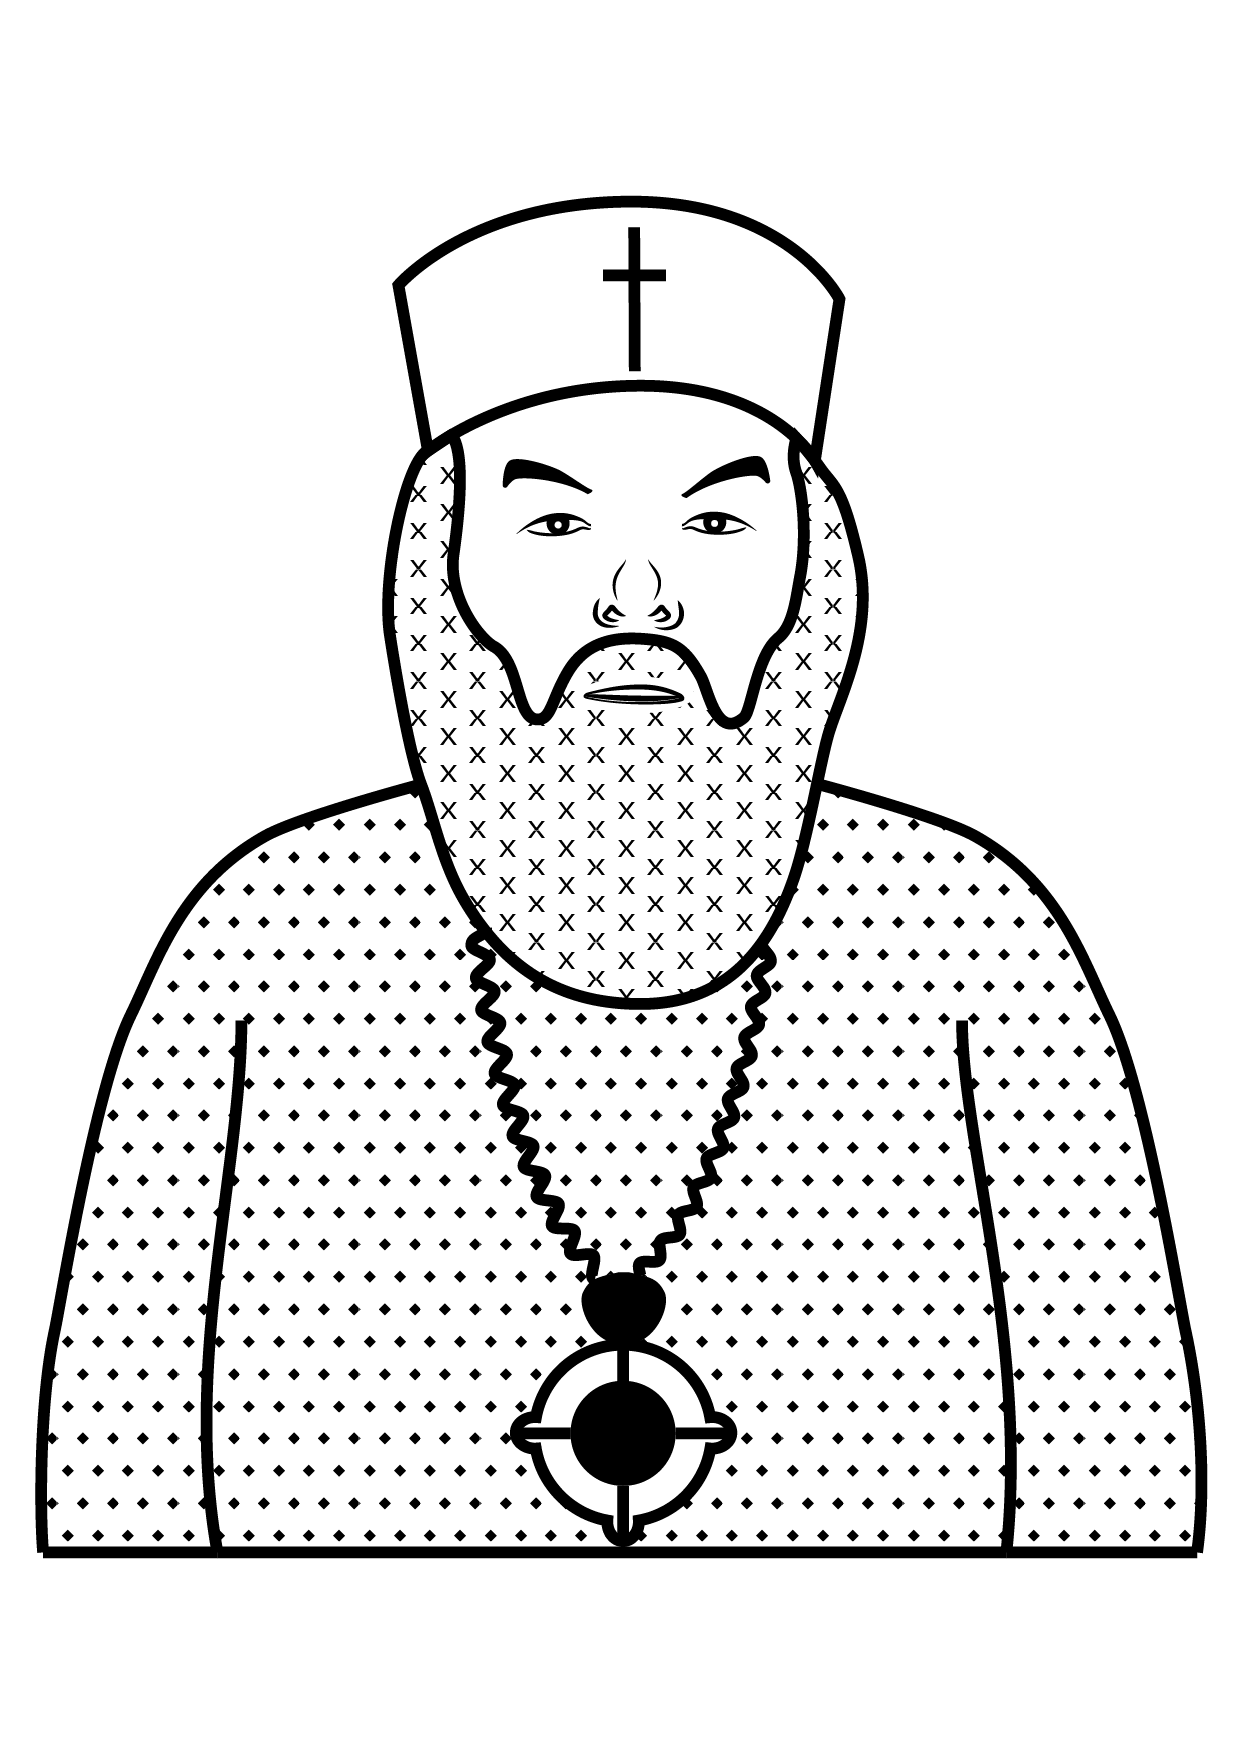 Teoctist, the Patriach of the Romanian Orthodox Church